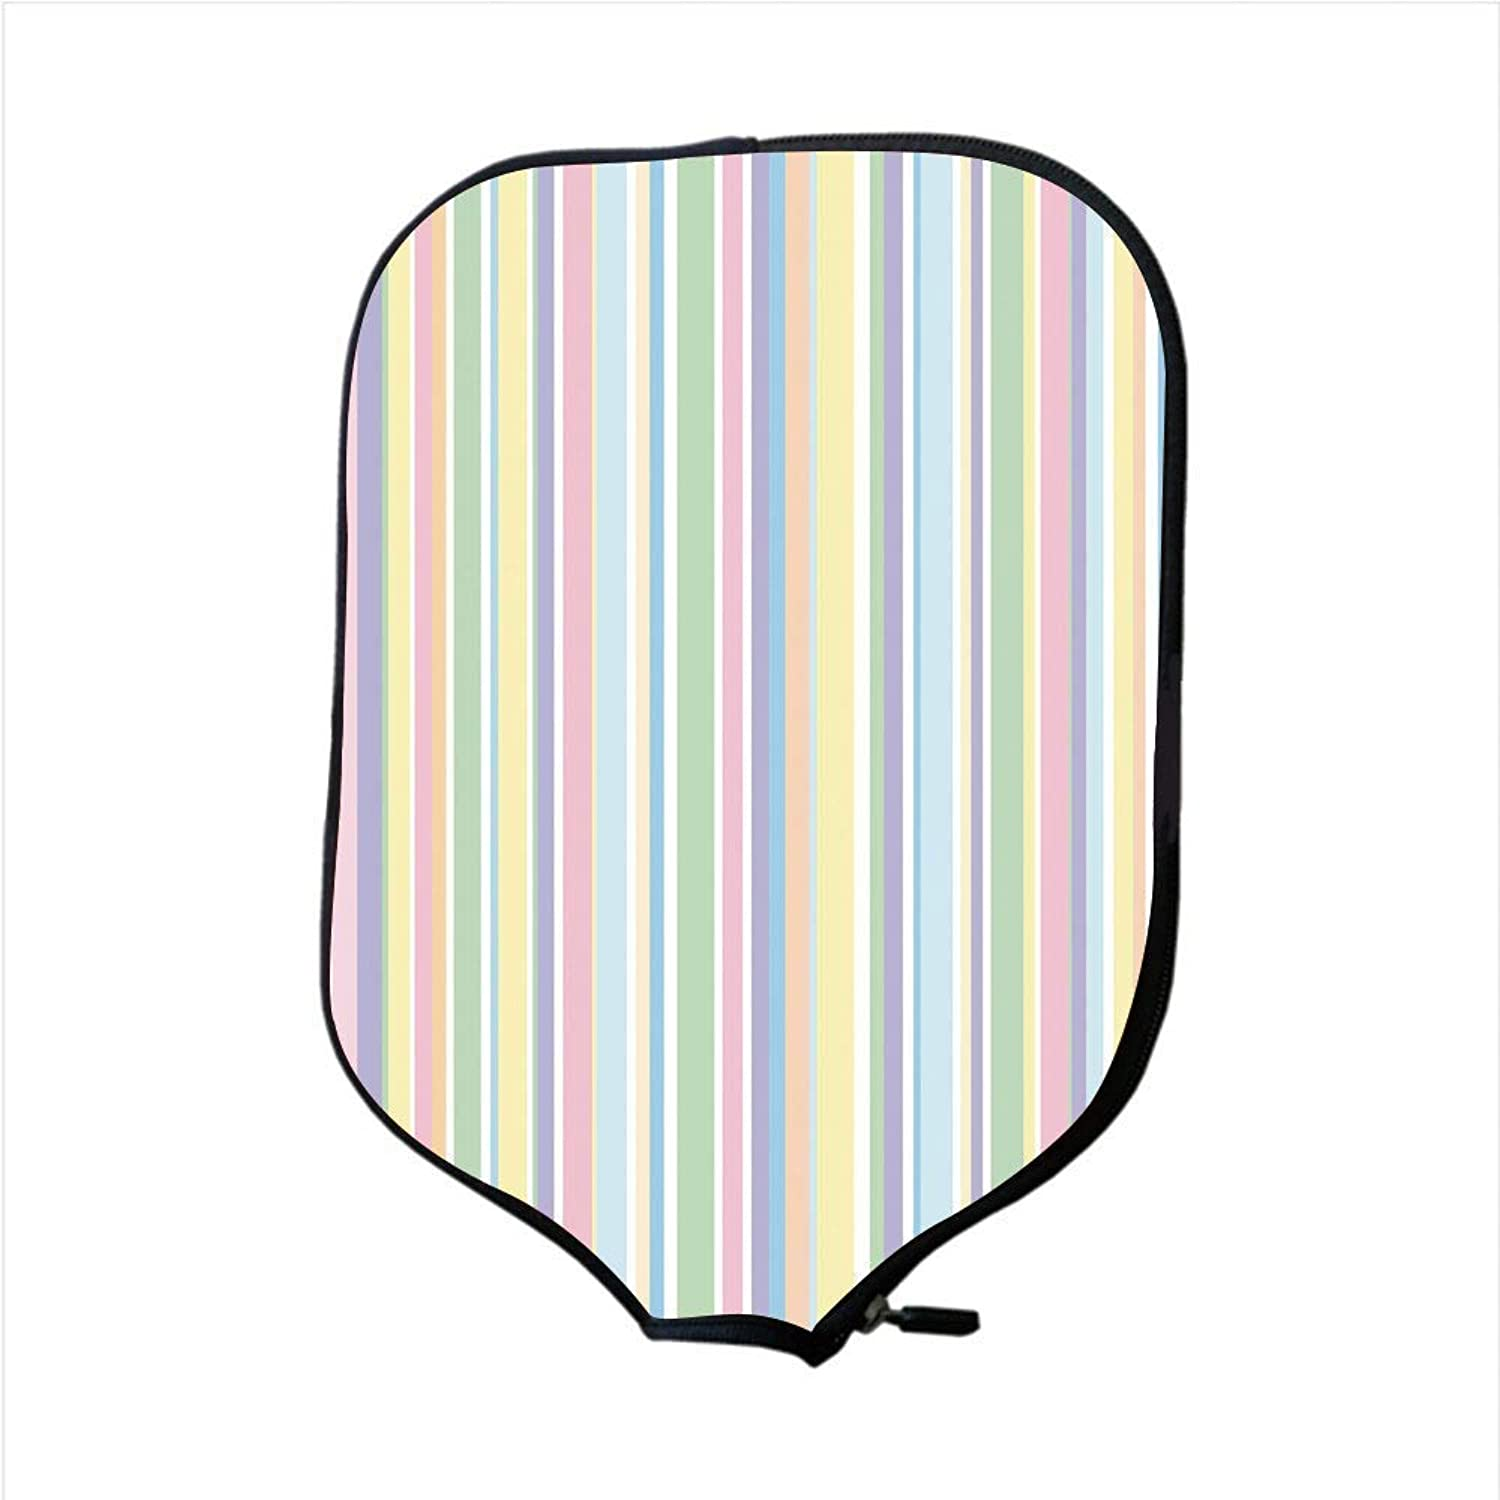 Fine Neoprene Pickleball Paddle Racket Cover Case,Pastel,greenically Striped Pattern Different colord Straight Lines Classical Old Fashioned,Multicolor,Fit for Most Rackets